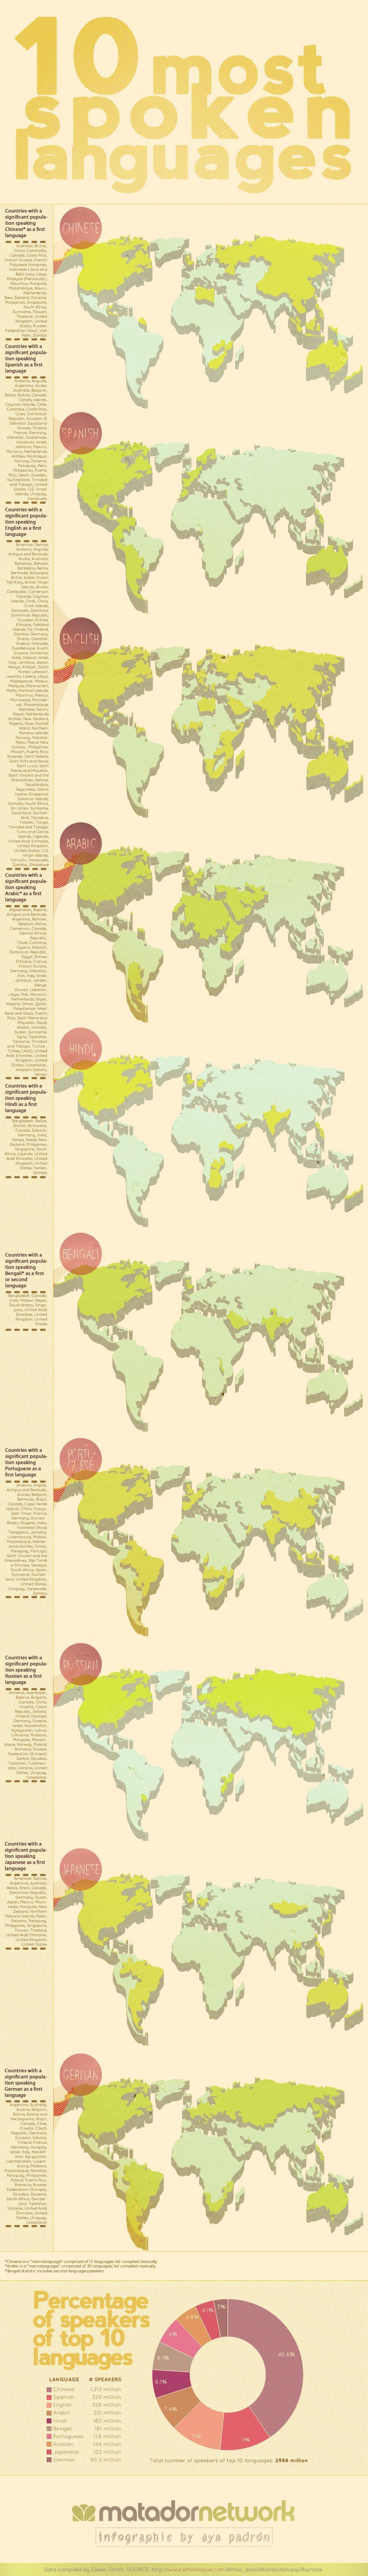 Where Are The Worlds Most Common Languages Spoken Infographic - 3 most common languages in the world